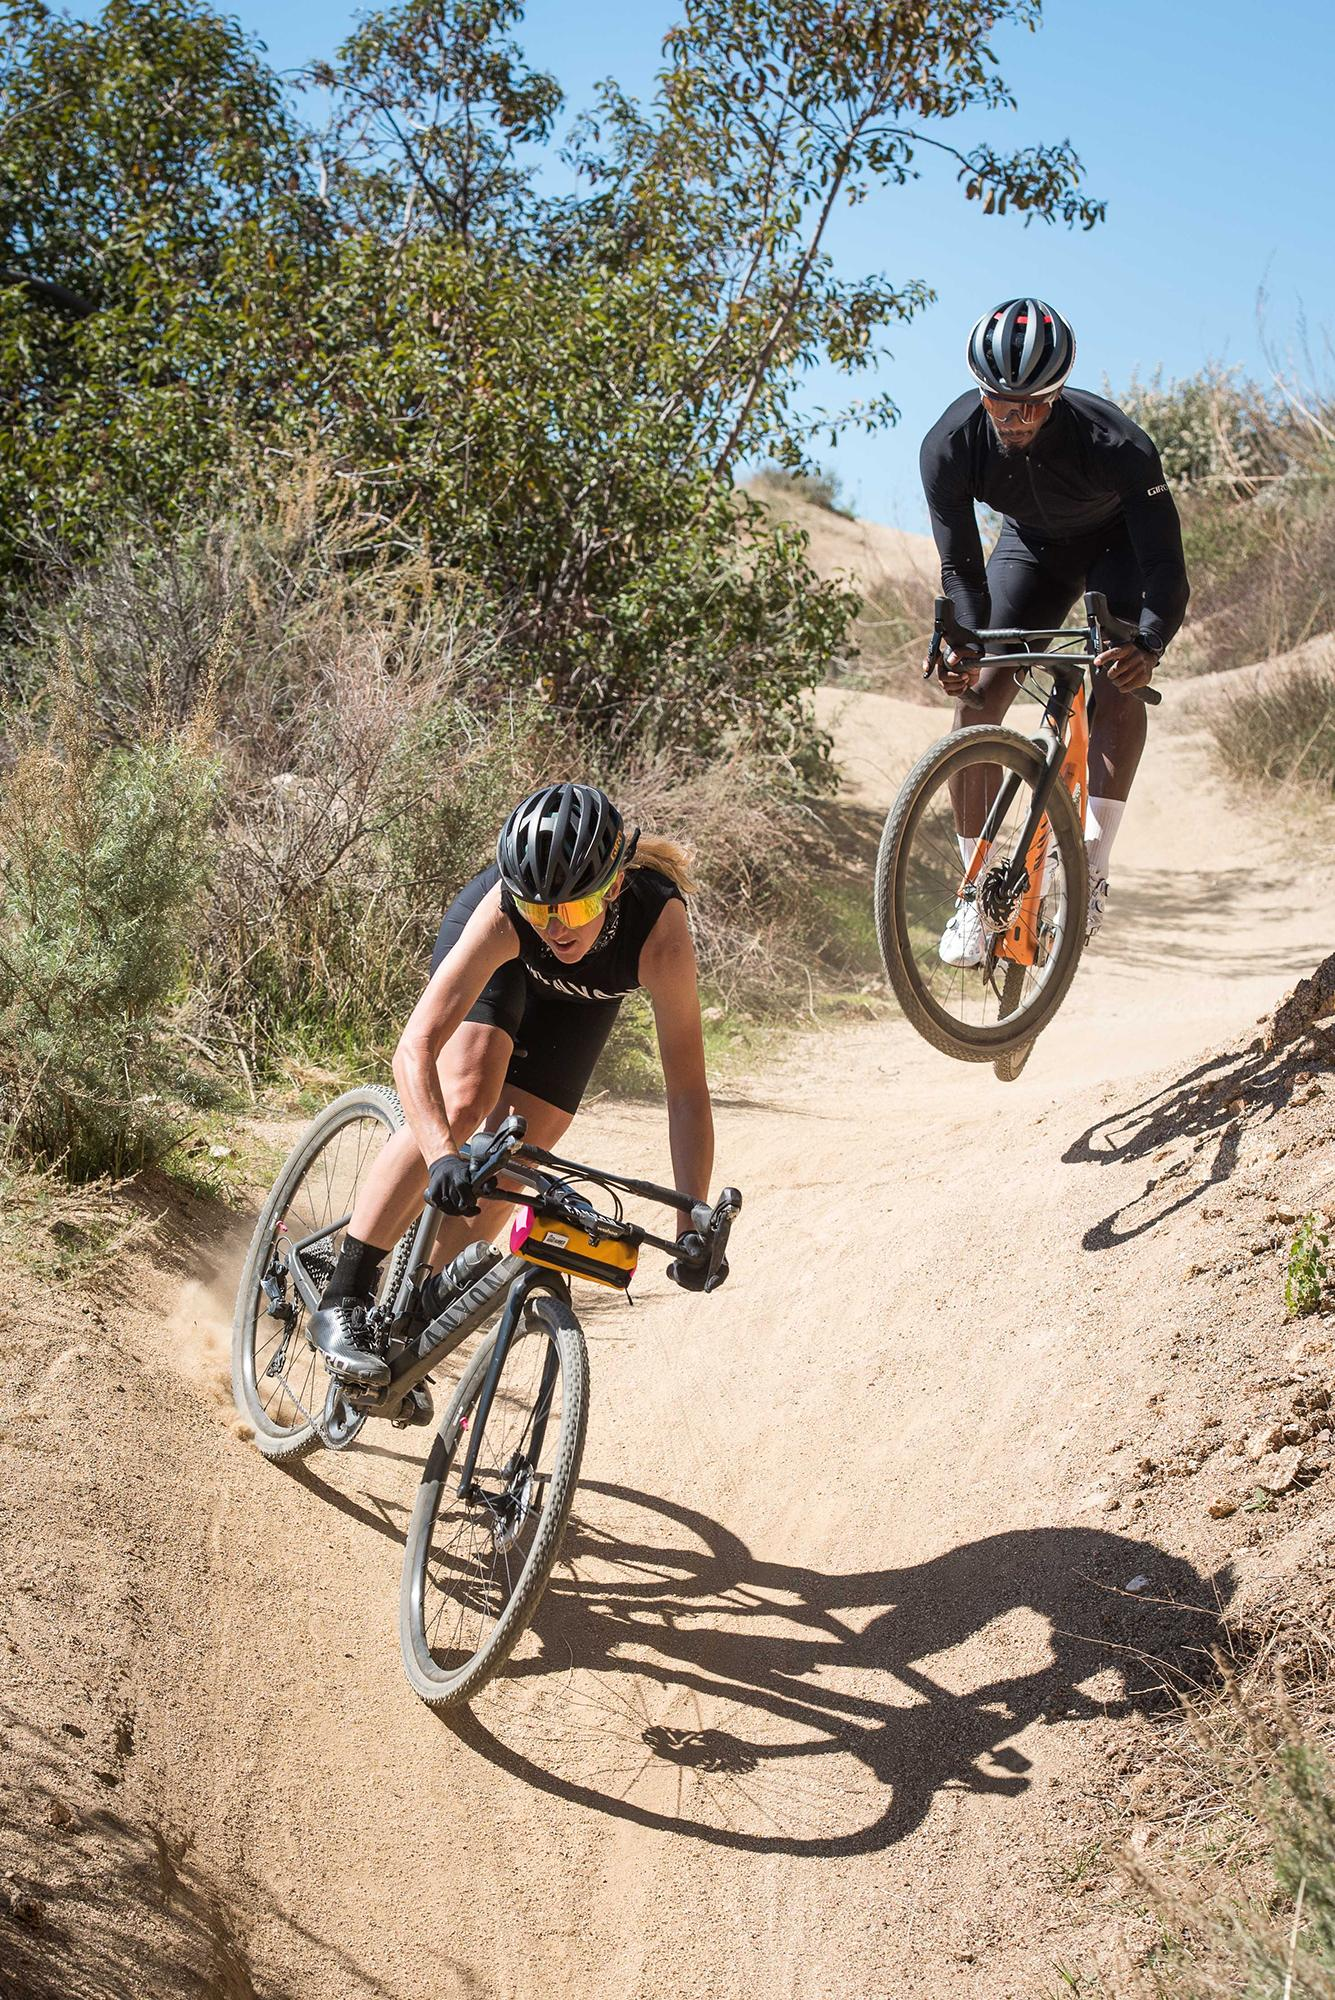 Rallying down dusty trails in Los Angeles.